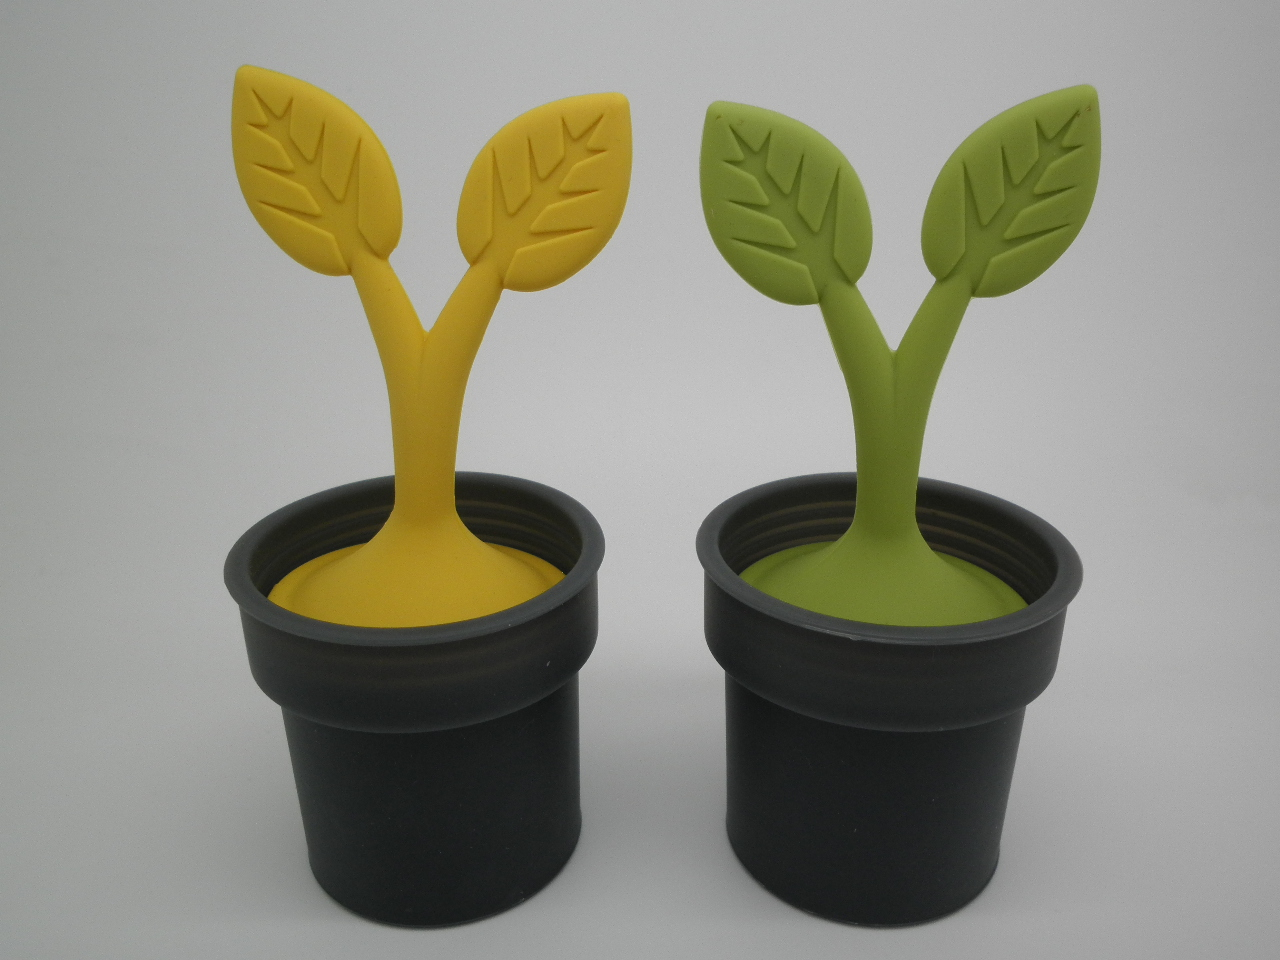 http://www.refinehksilicone.cn/data/images/product/20180417101013_819.JPG